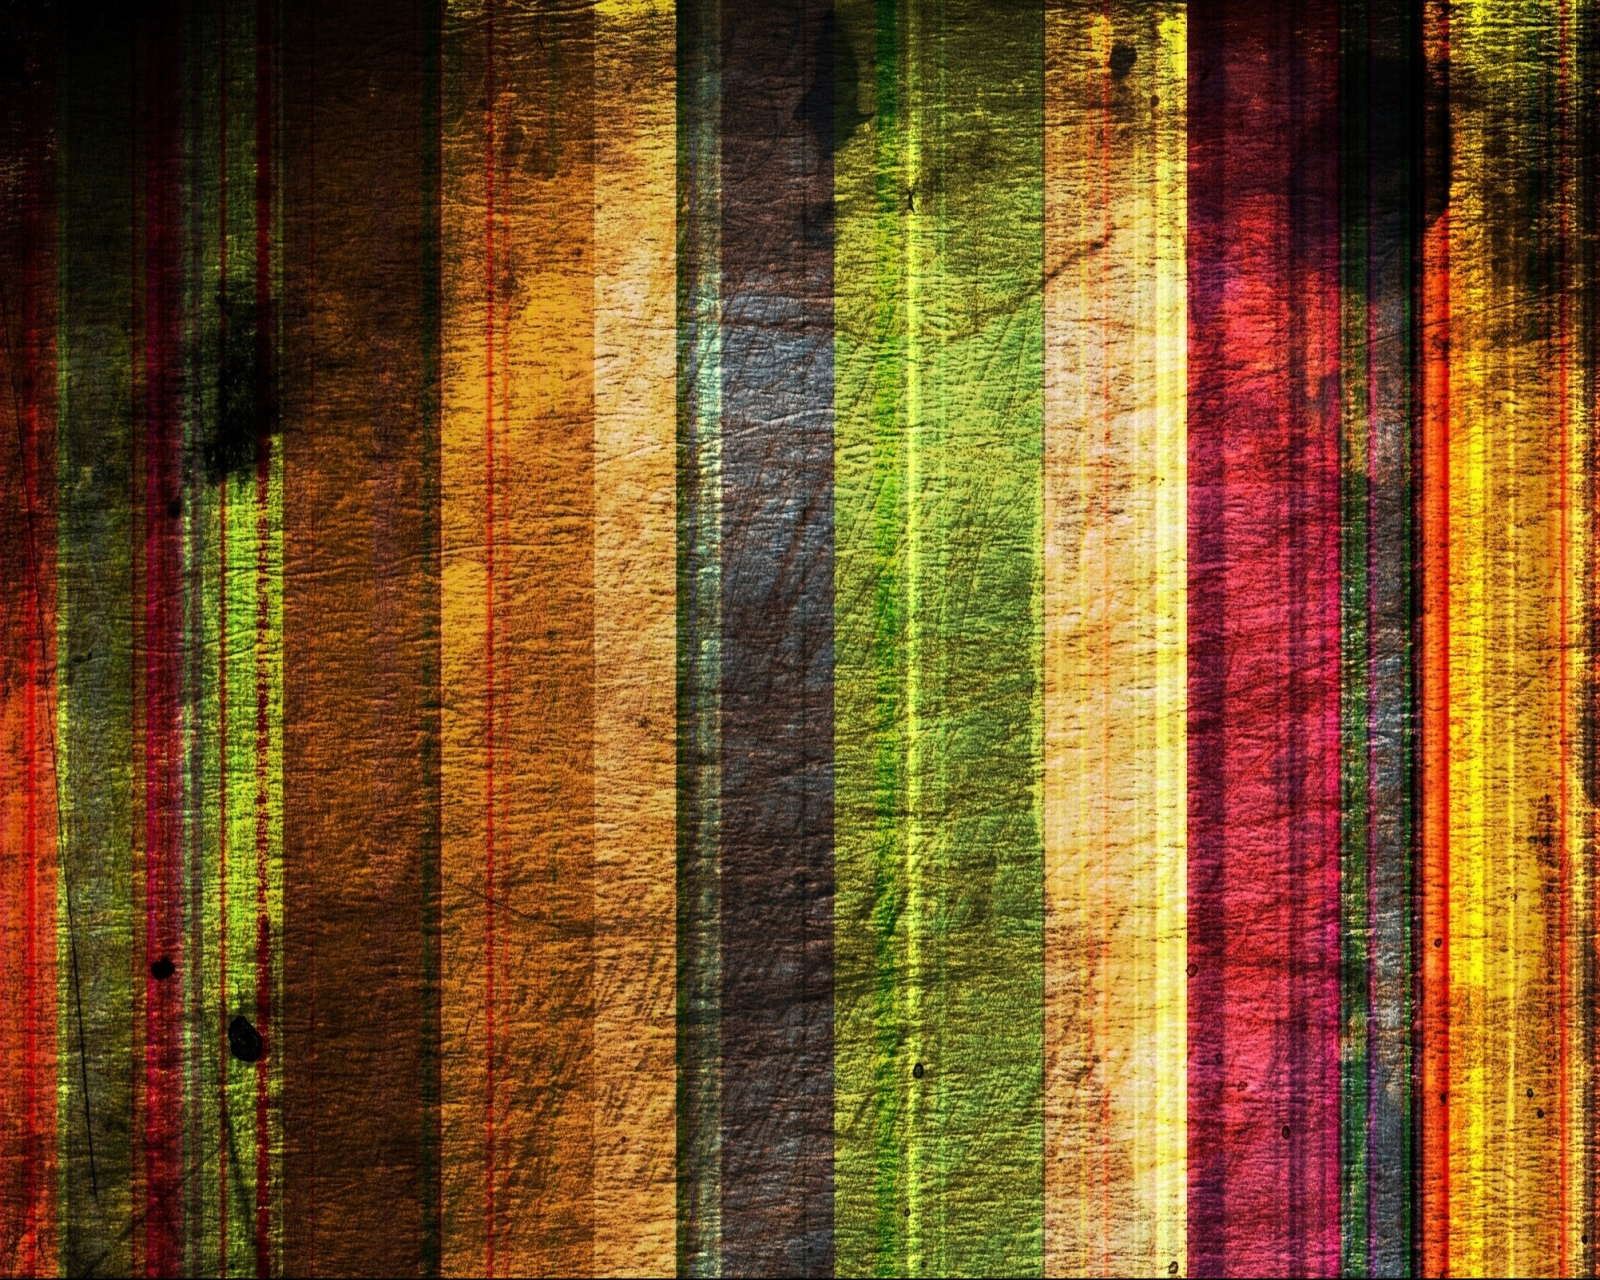 Abstract Stripes 1600x1280 Wallpaper Id 62909 Mobile Abyss